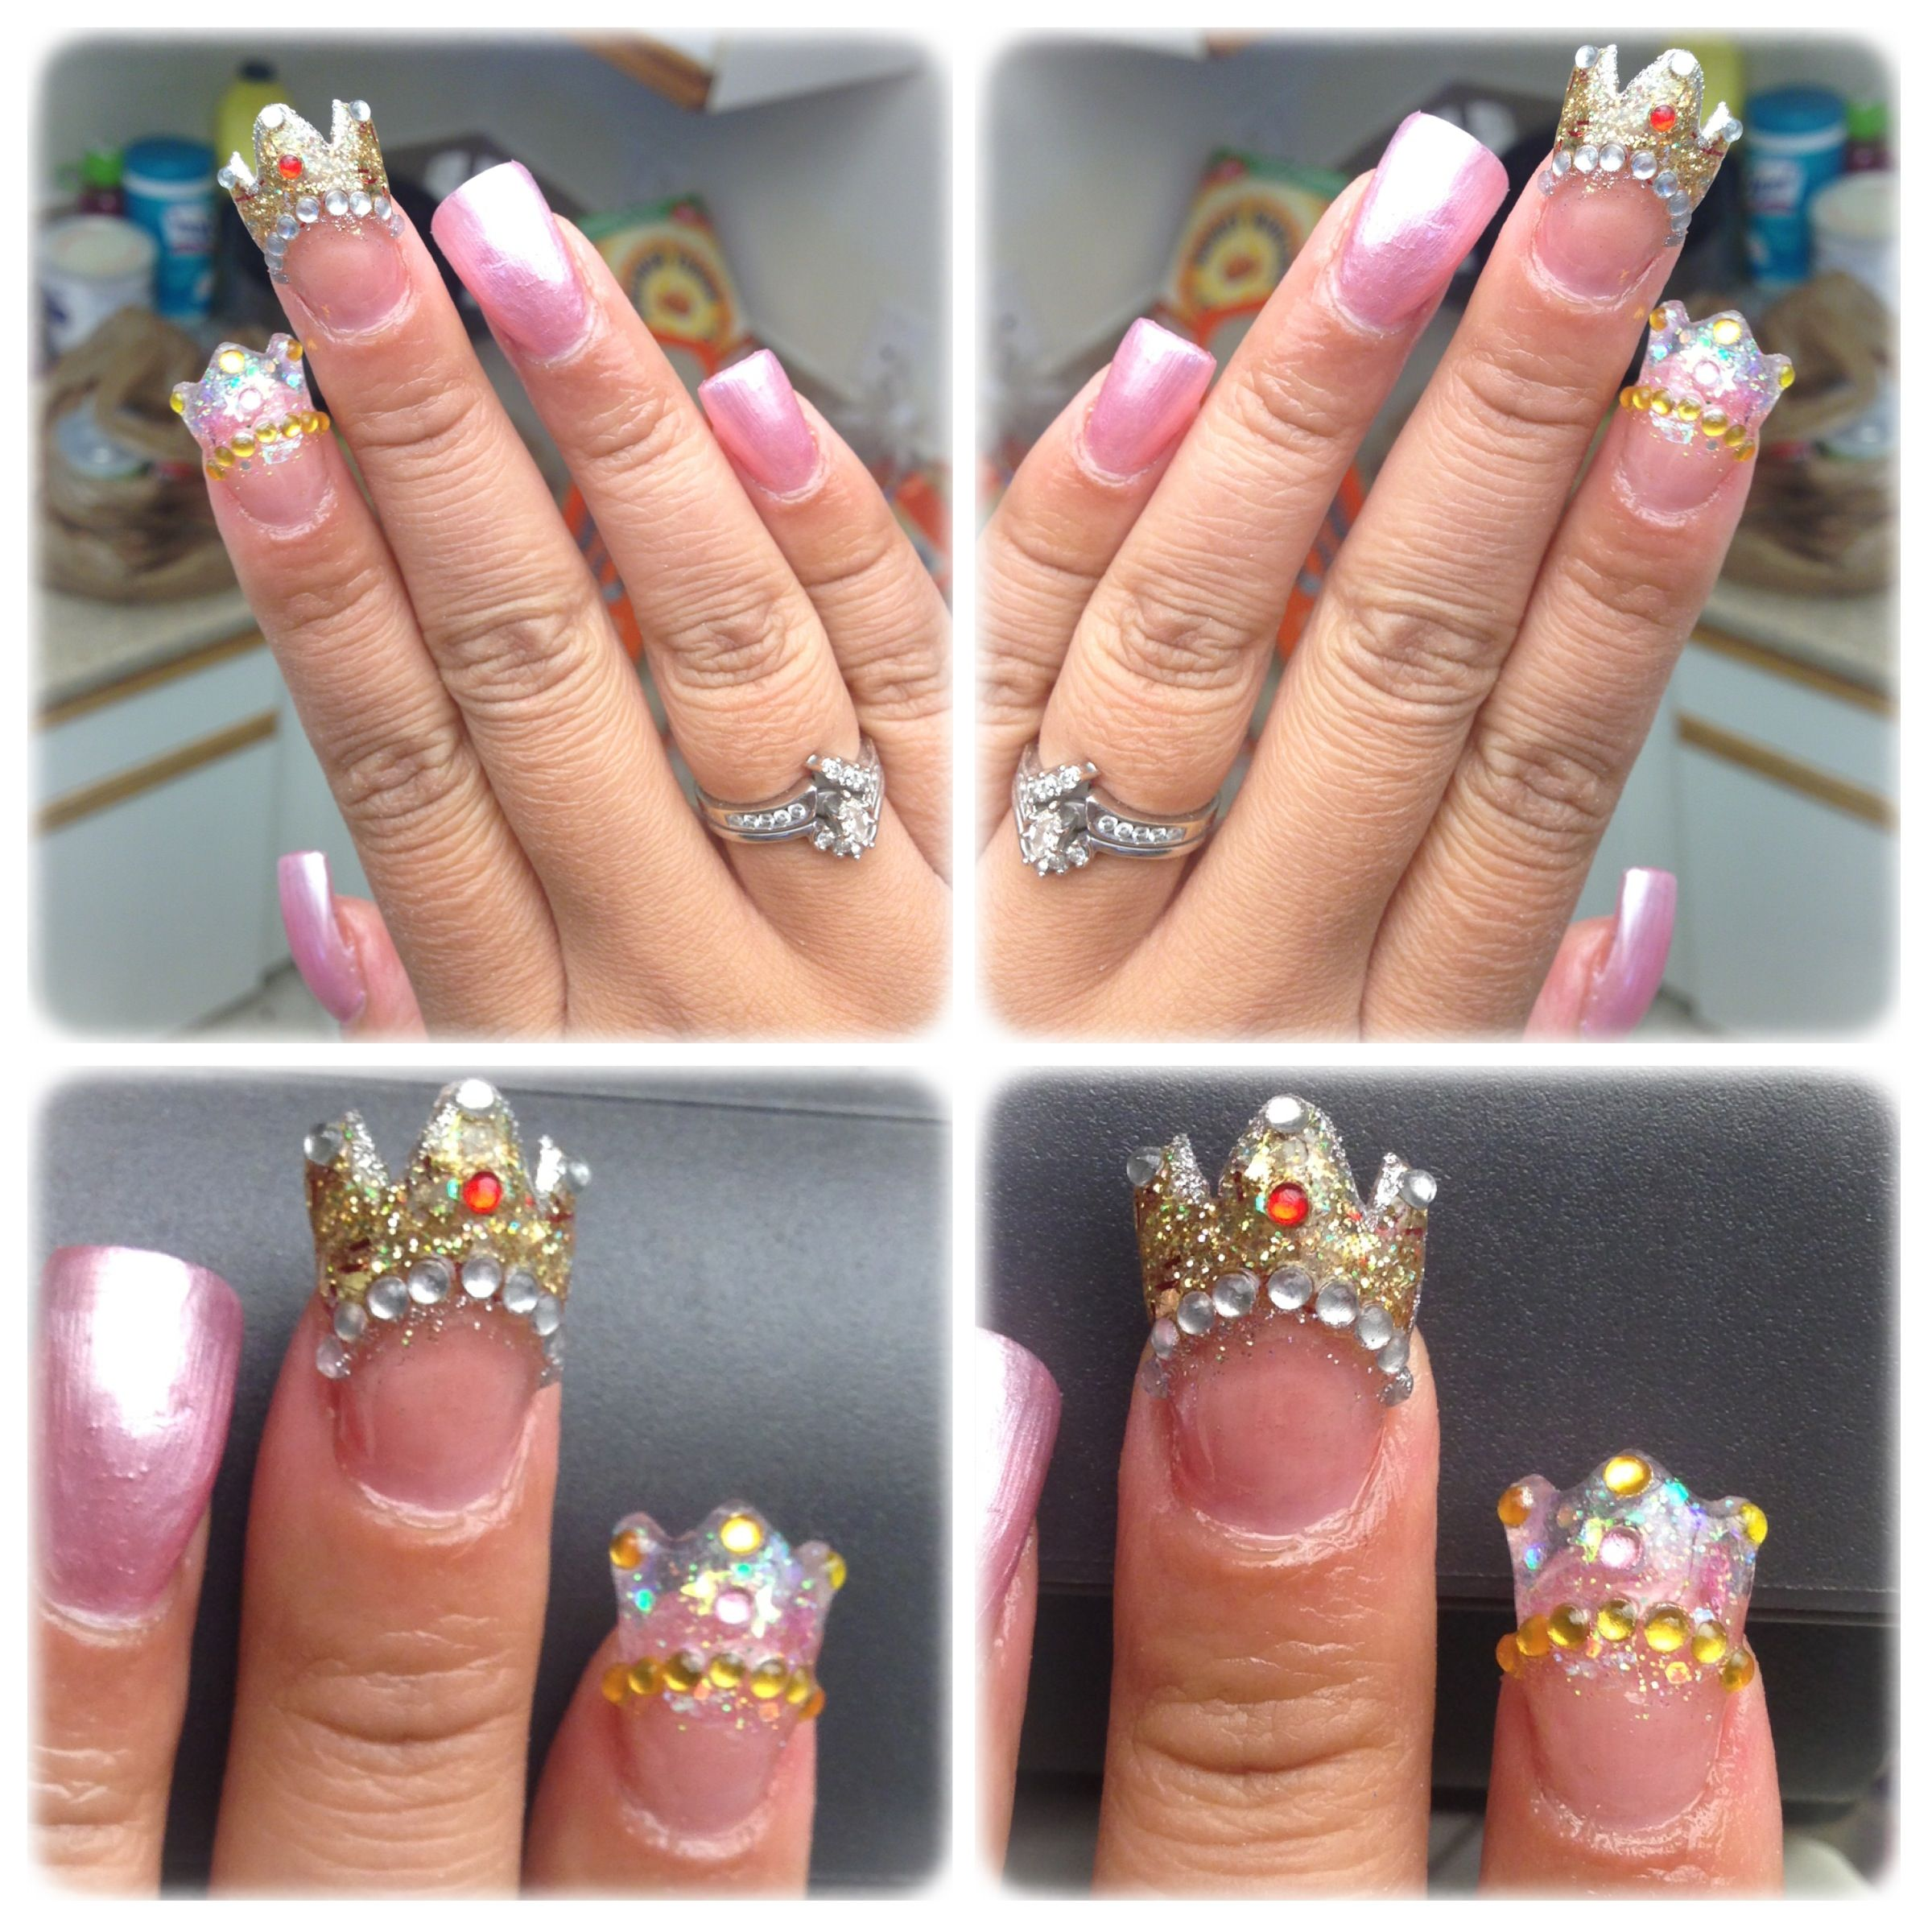 My king. His queen. Nails. Missing my husband. Can\u0027t wait